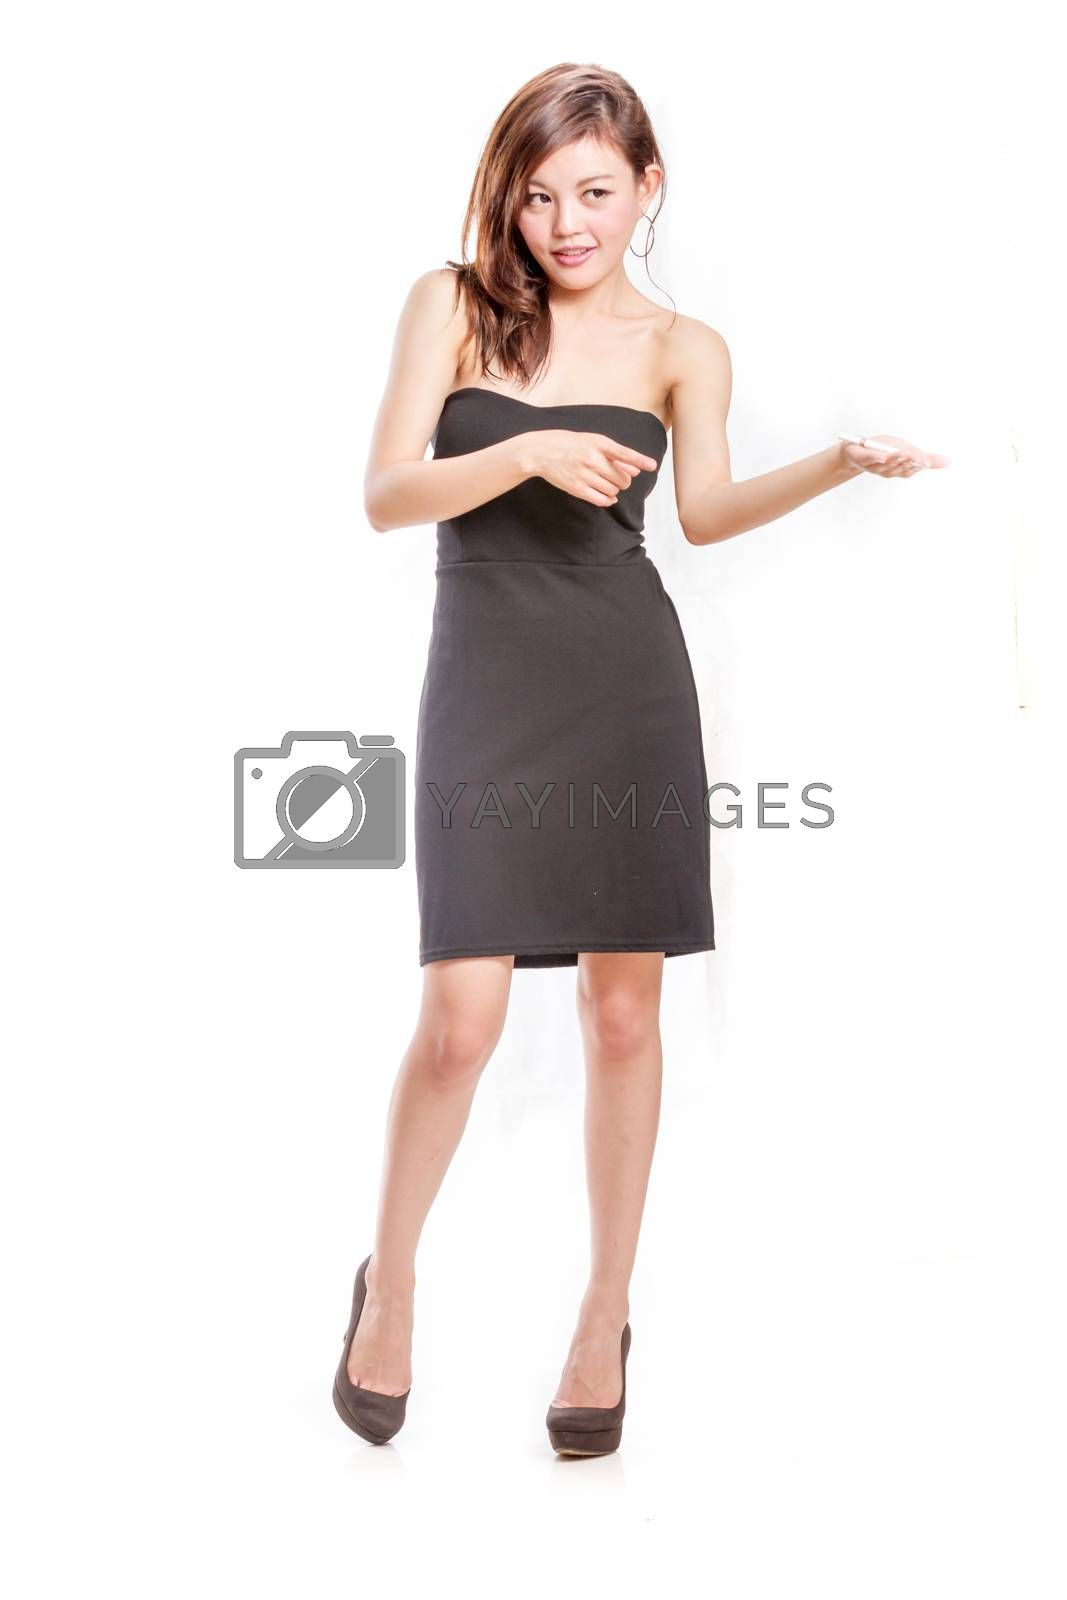 Royalty free image of Chinese woman in black dress offering cigarette by imagesbykenny